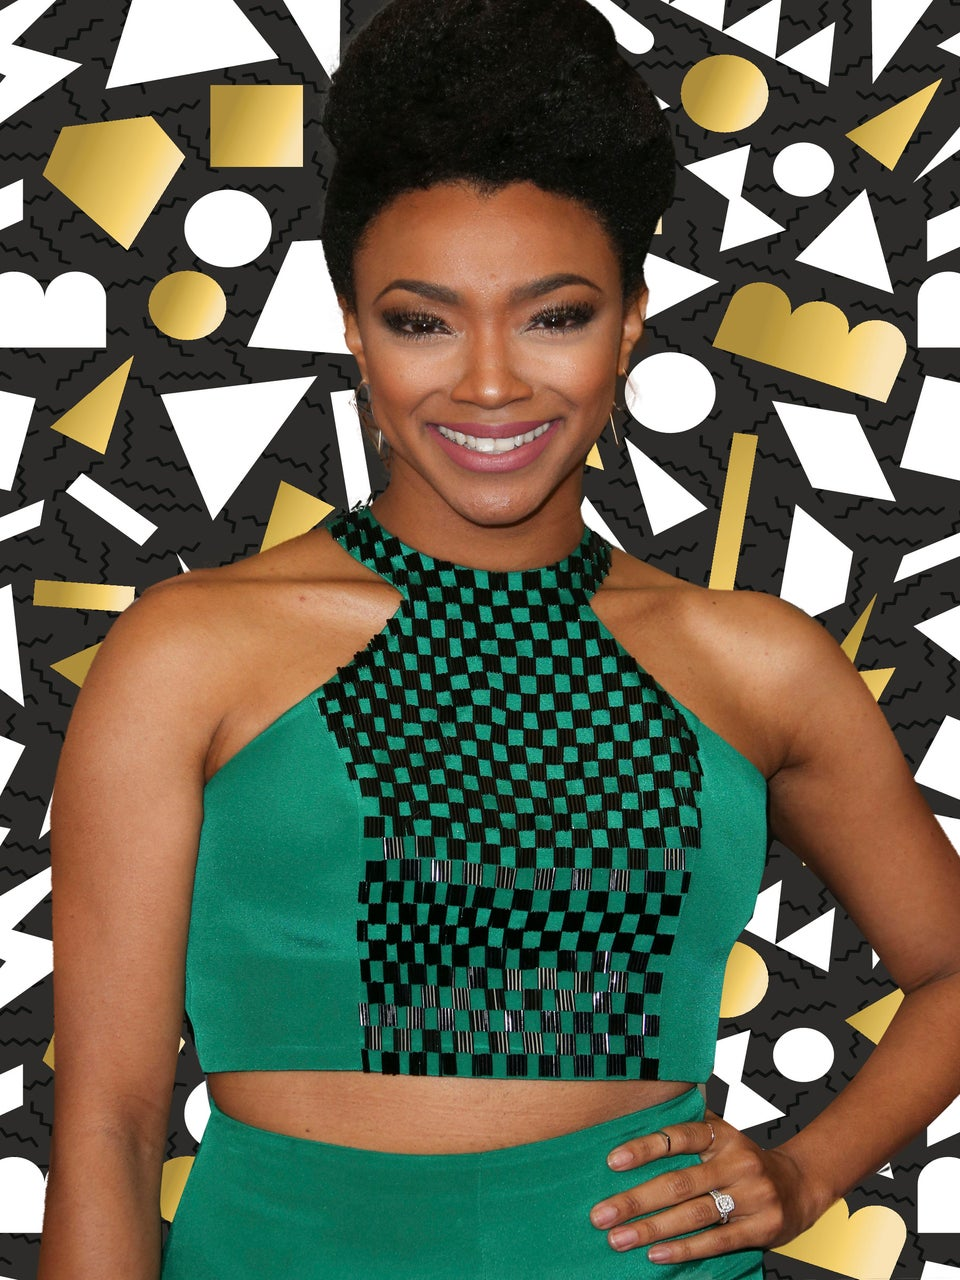 Seven Things To Know About Sonequa Martin-Green, The First African-American Woman To Lead A 'Star Trek' Cast